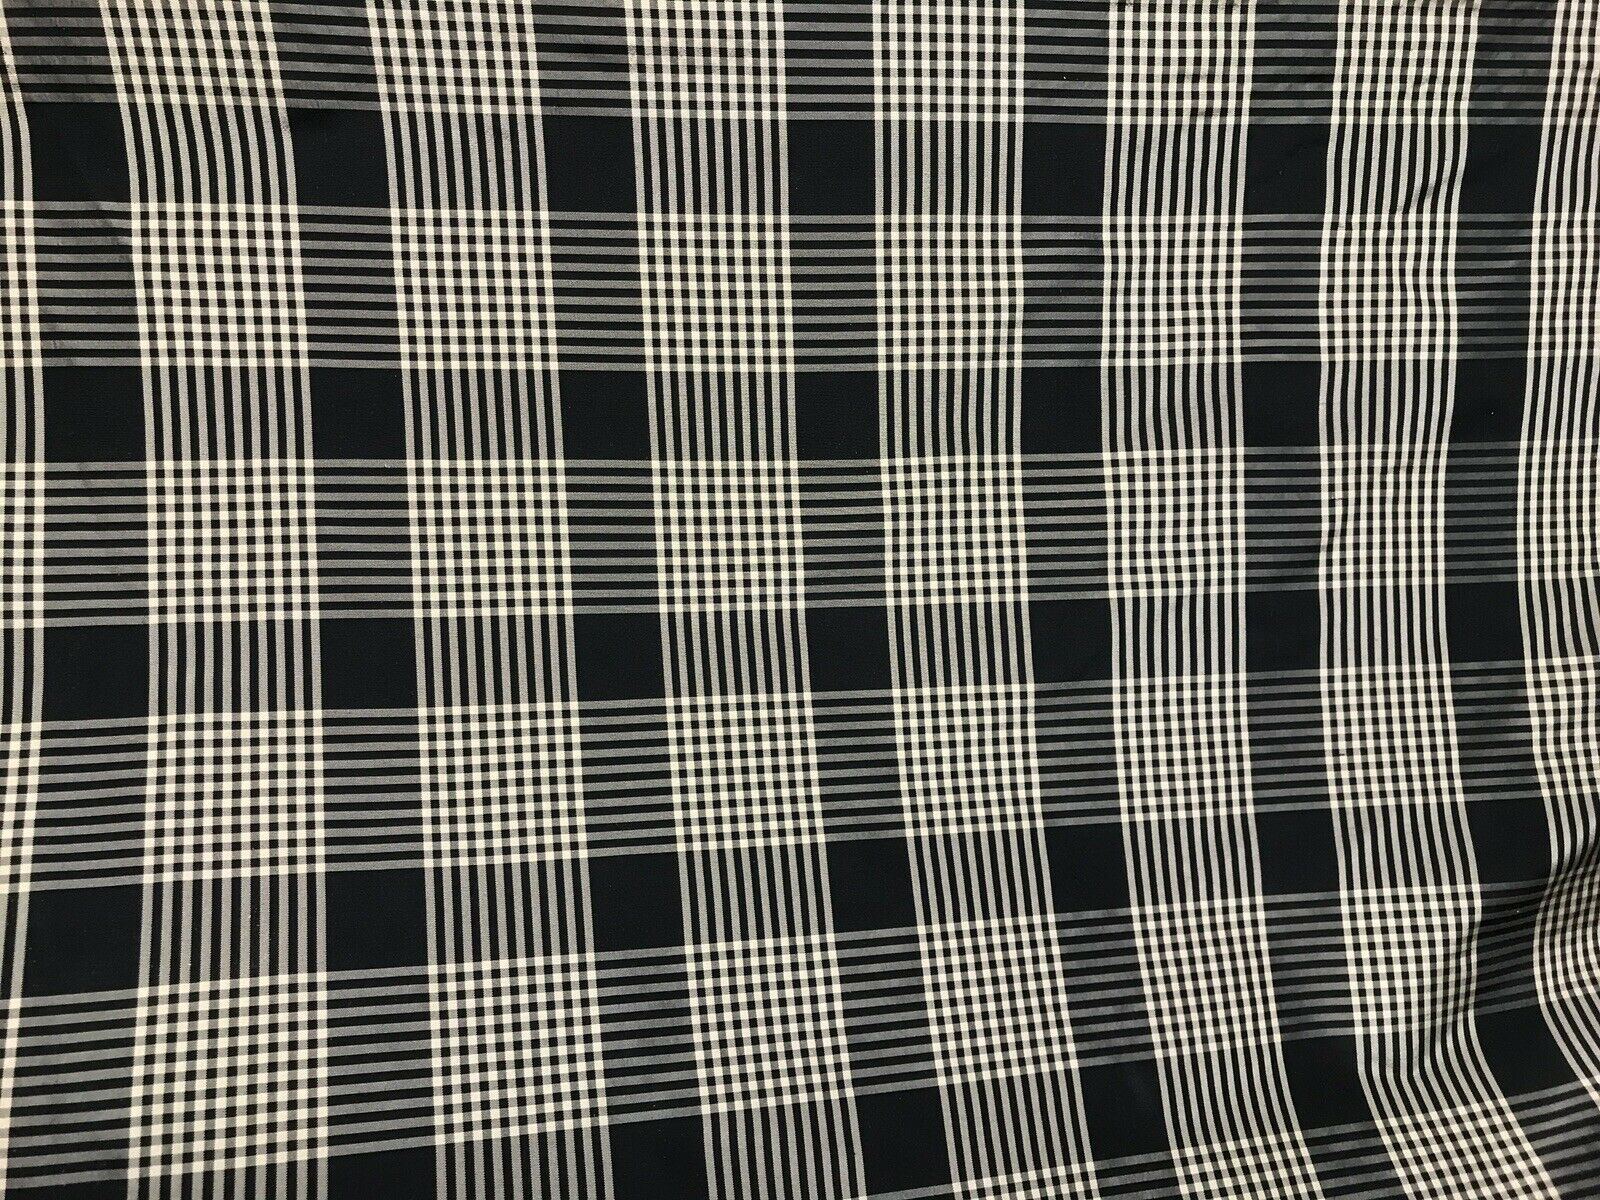 NEW Designer 100% Silk Taffeta Gingham Plaid Tartan Fabric- Black Beige